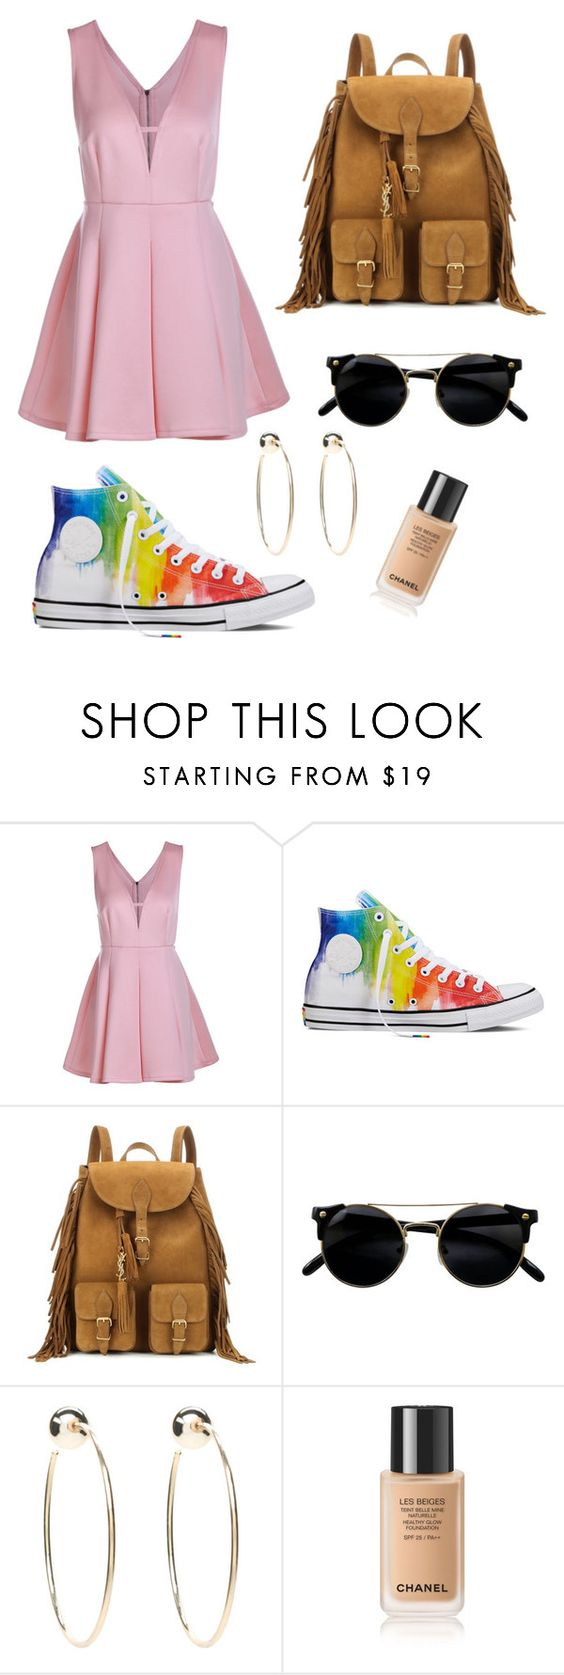 """Plane ride back"" by sydney0325 ❤ liked on Polyvore featuring beauty, Converse, Yves Saint Laurent and Bebe"